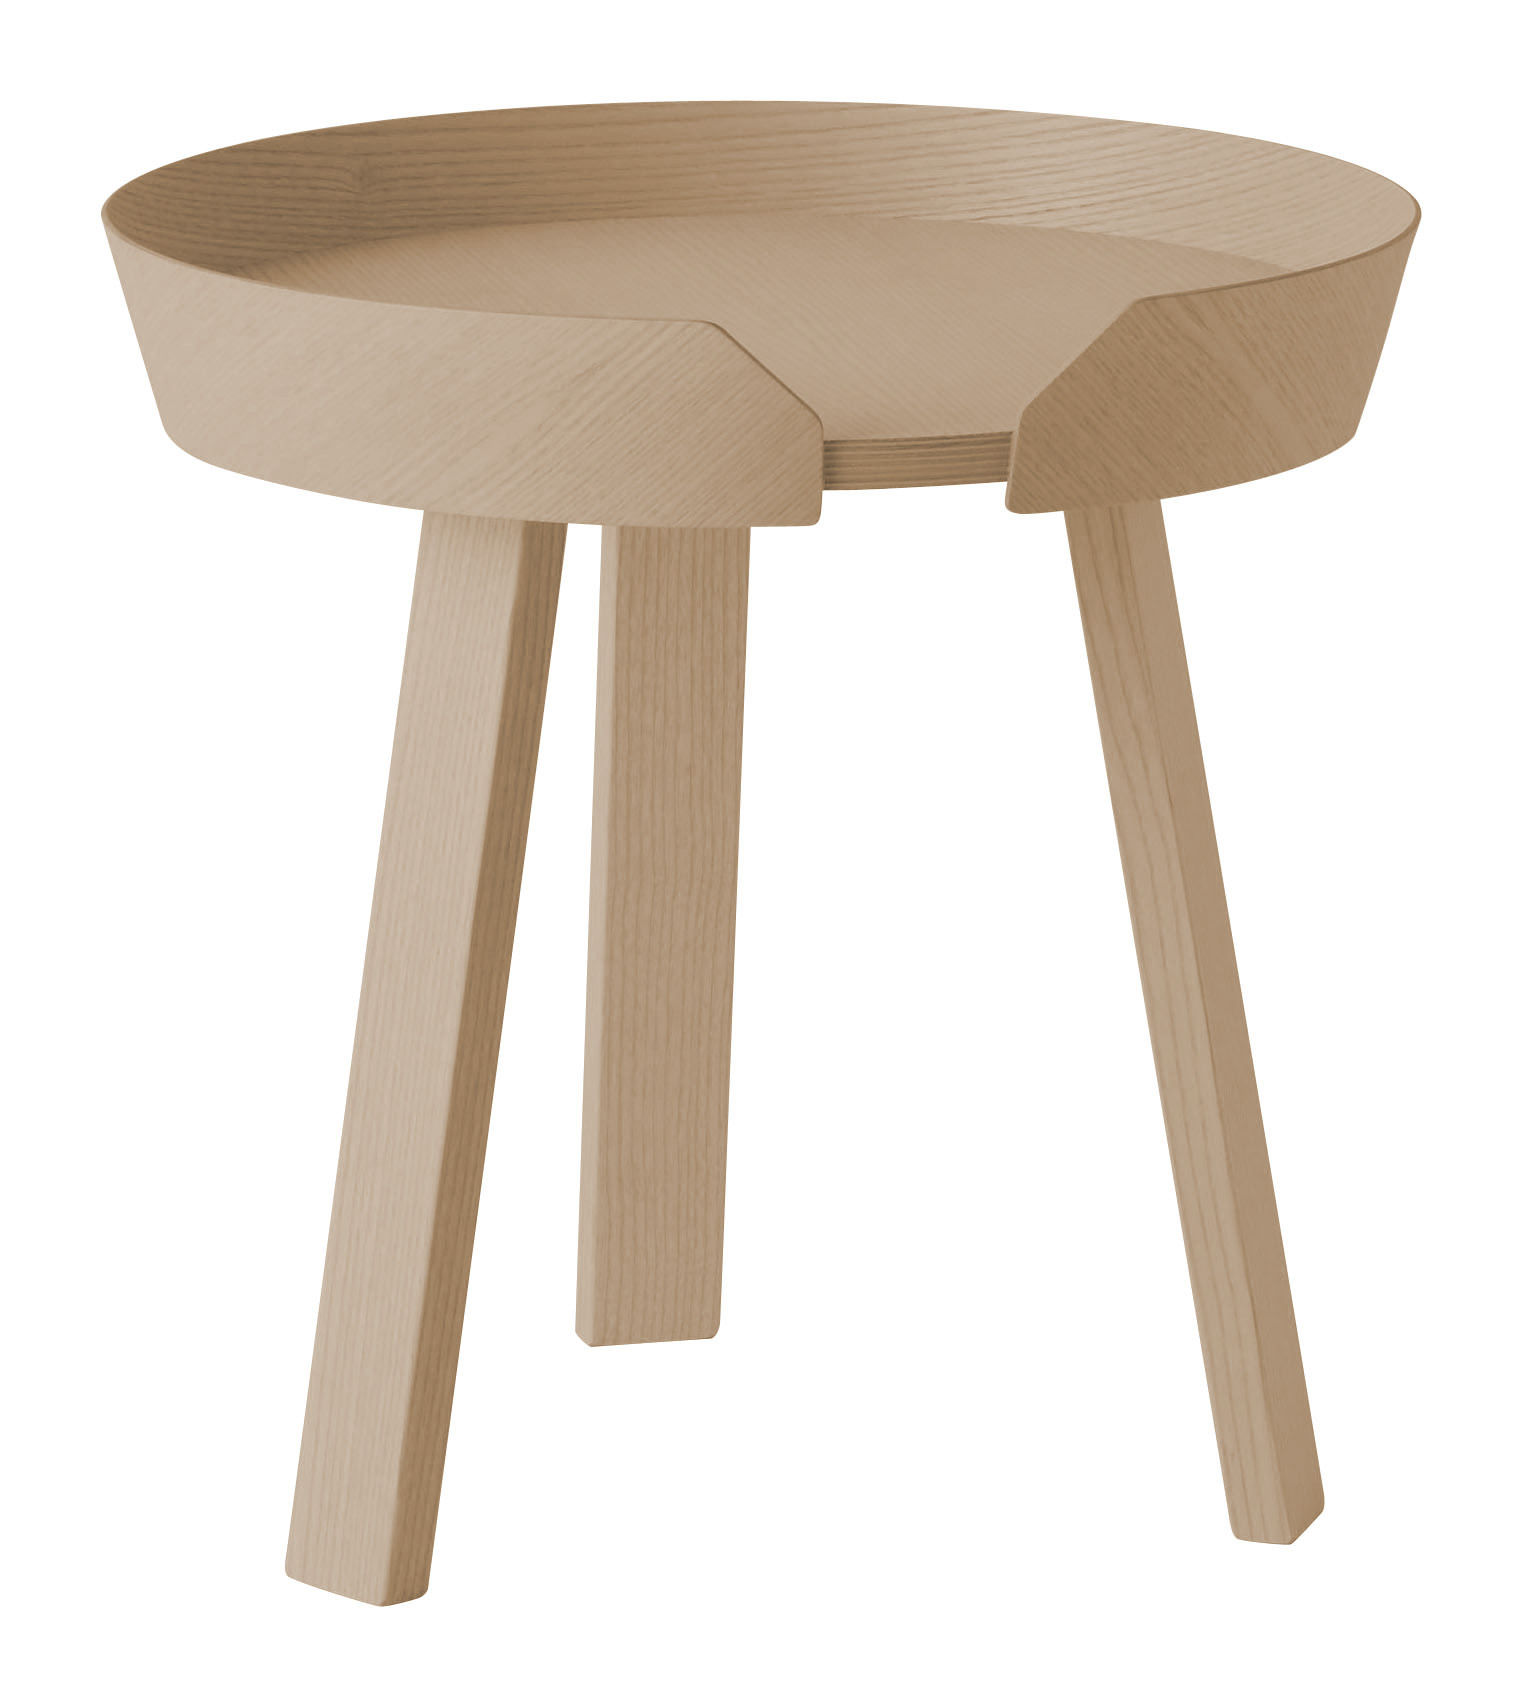 Mobilier - Tables basses - Table basse Around Small / Ø 45 x H 46 cm - Muuto - Chêne naturel - Chêne